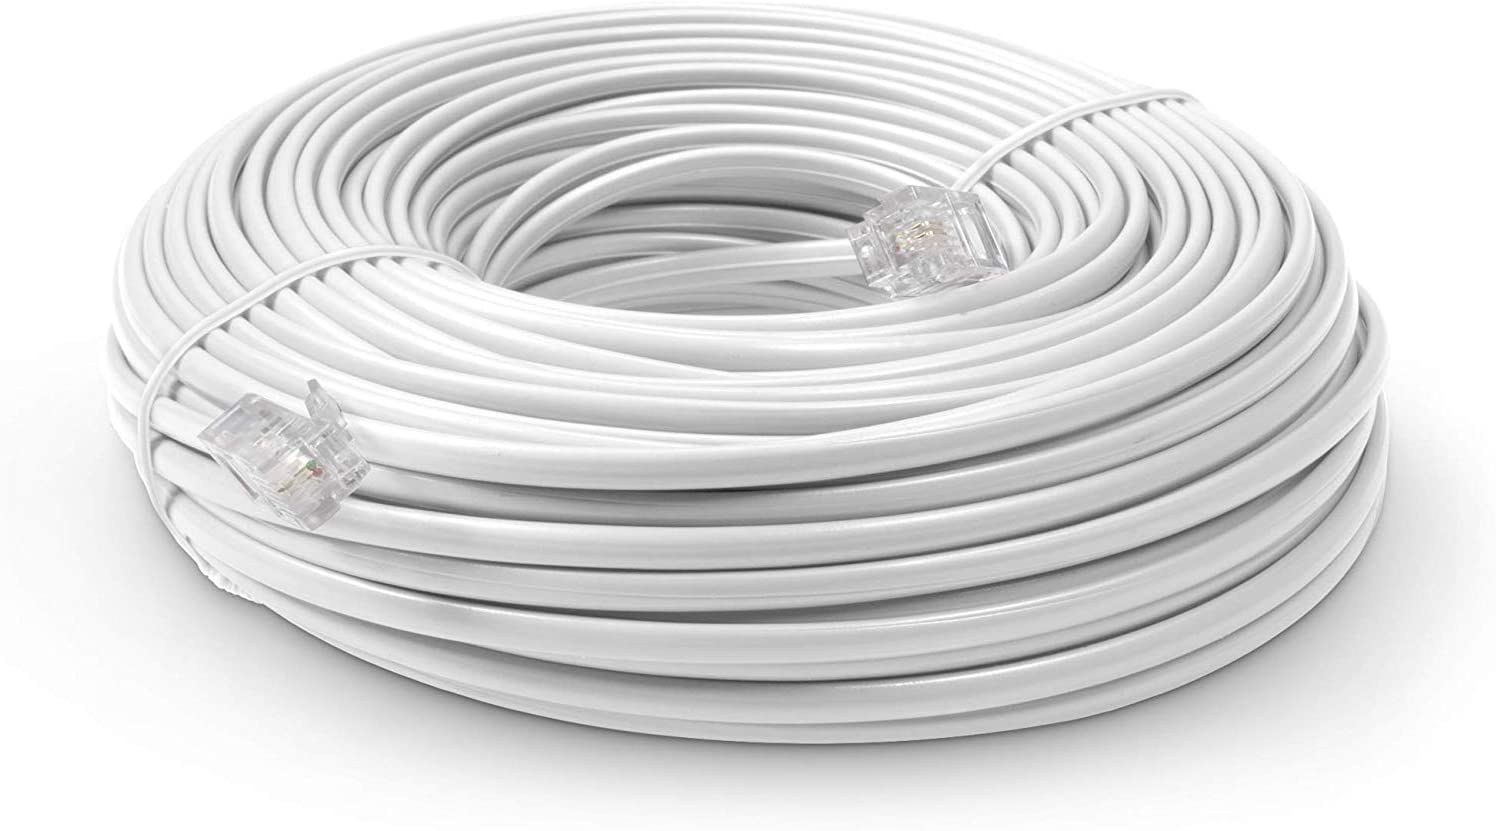 2pcs 15FT RJ11 BEST Modular Telephone Extension Cable Phone Cord Line Wire Grey